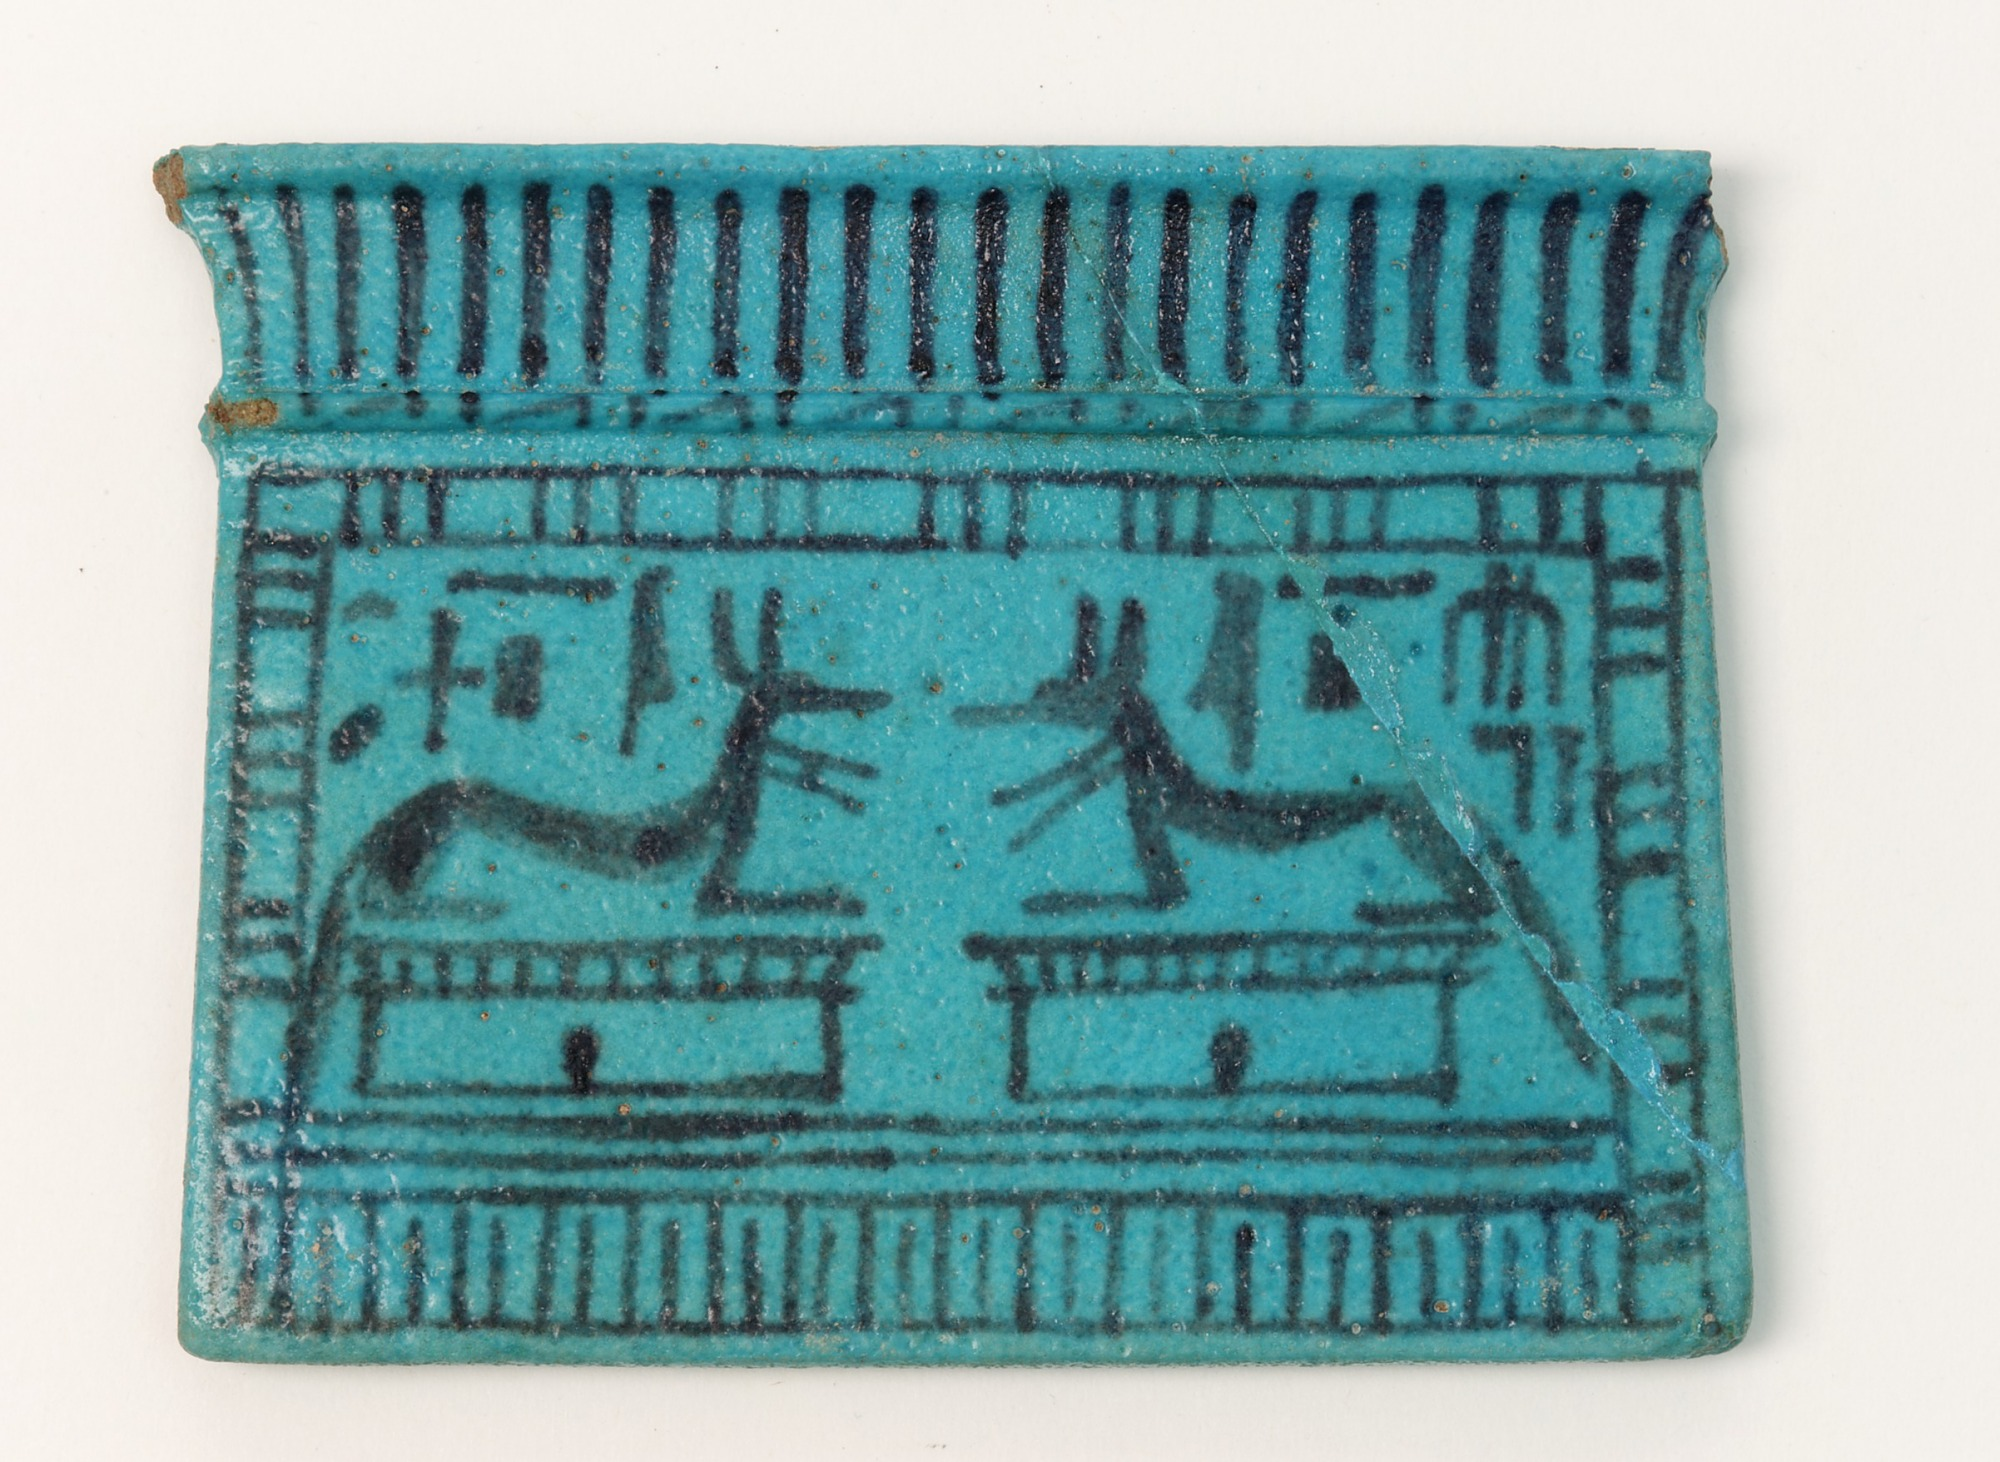 : Pectoral amulet depicting the god Anubis